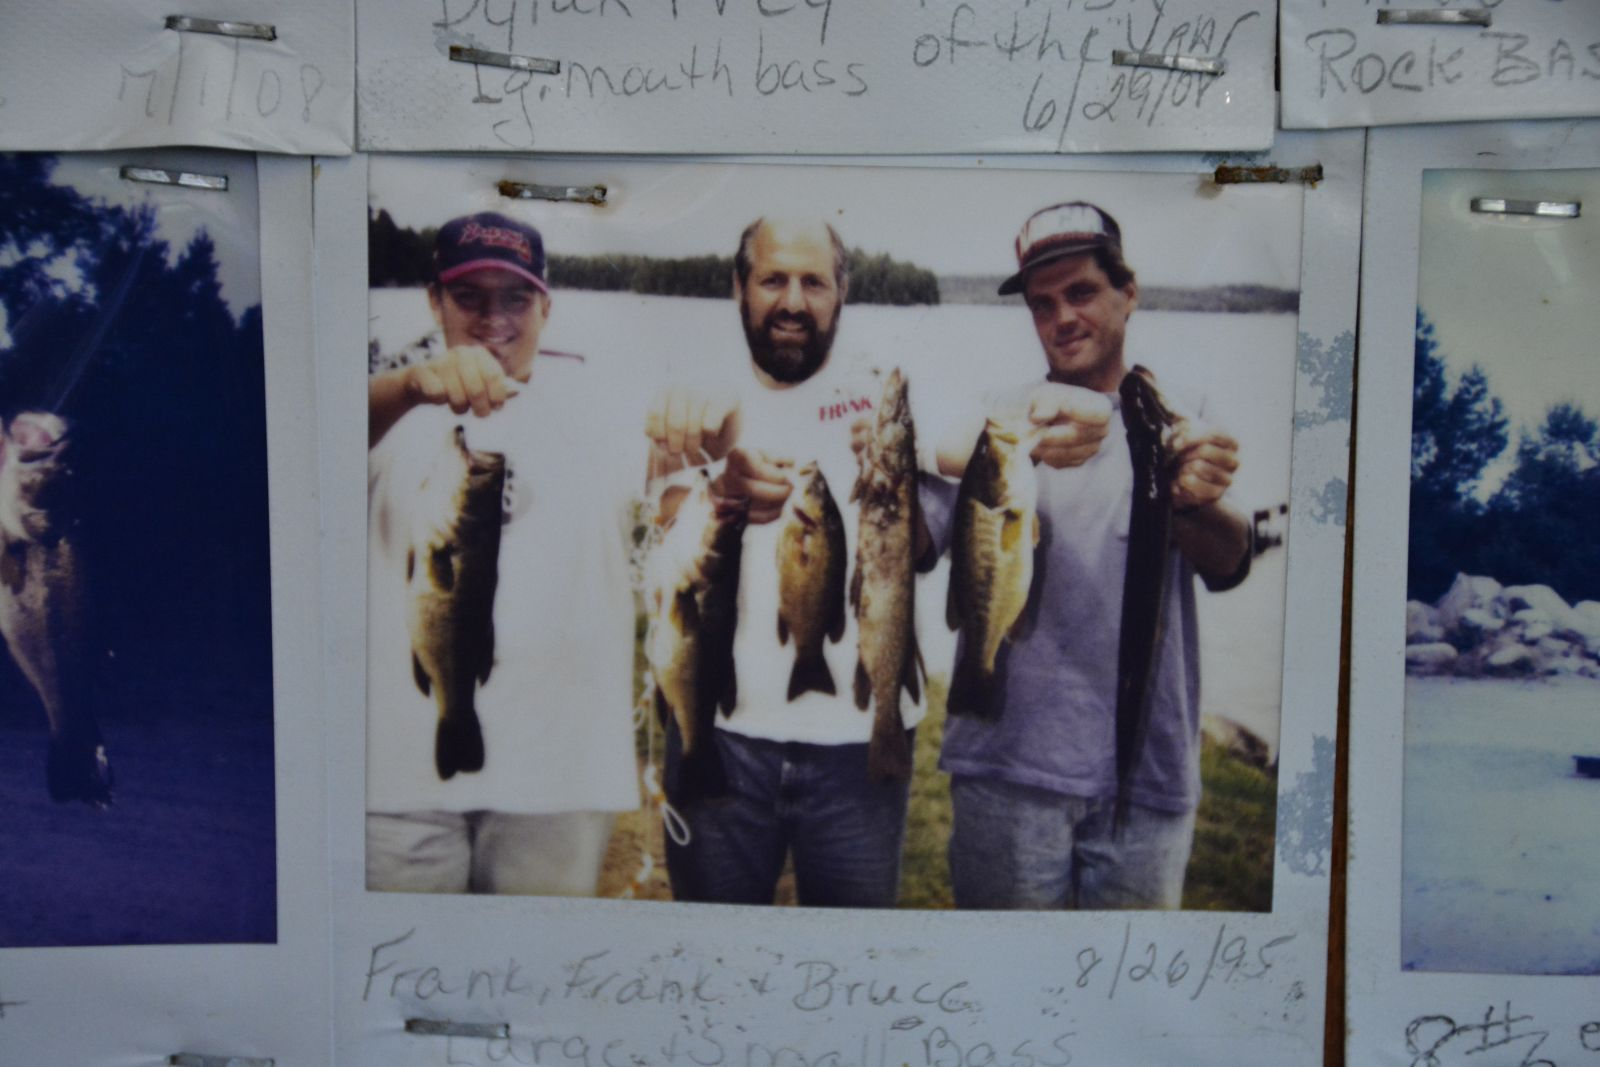 Frank Scotti, center, and his son Frank, left, and Bruce, right, showing off their catches of the day in a photo taken in 1995 that hangs on the Blue Jay Campsite store wall.